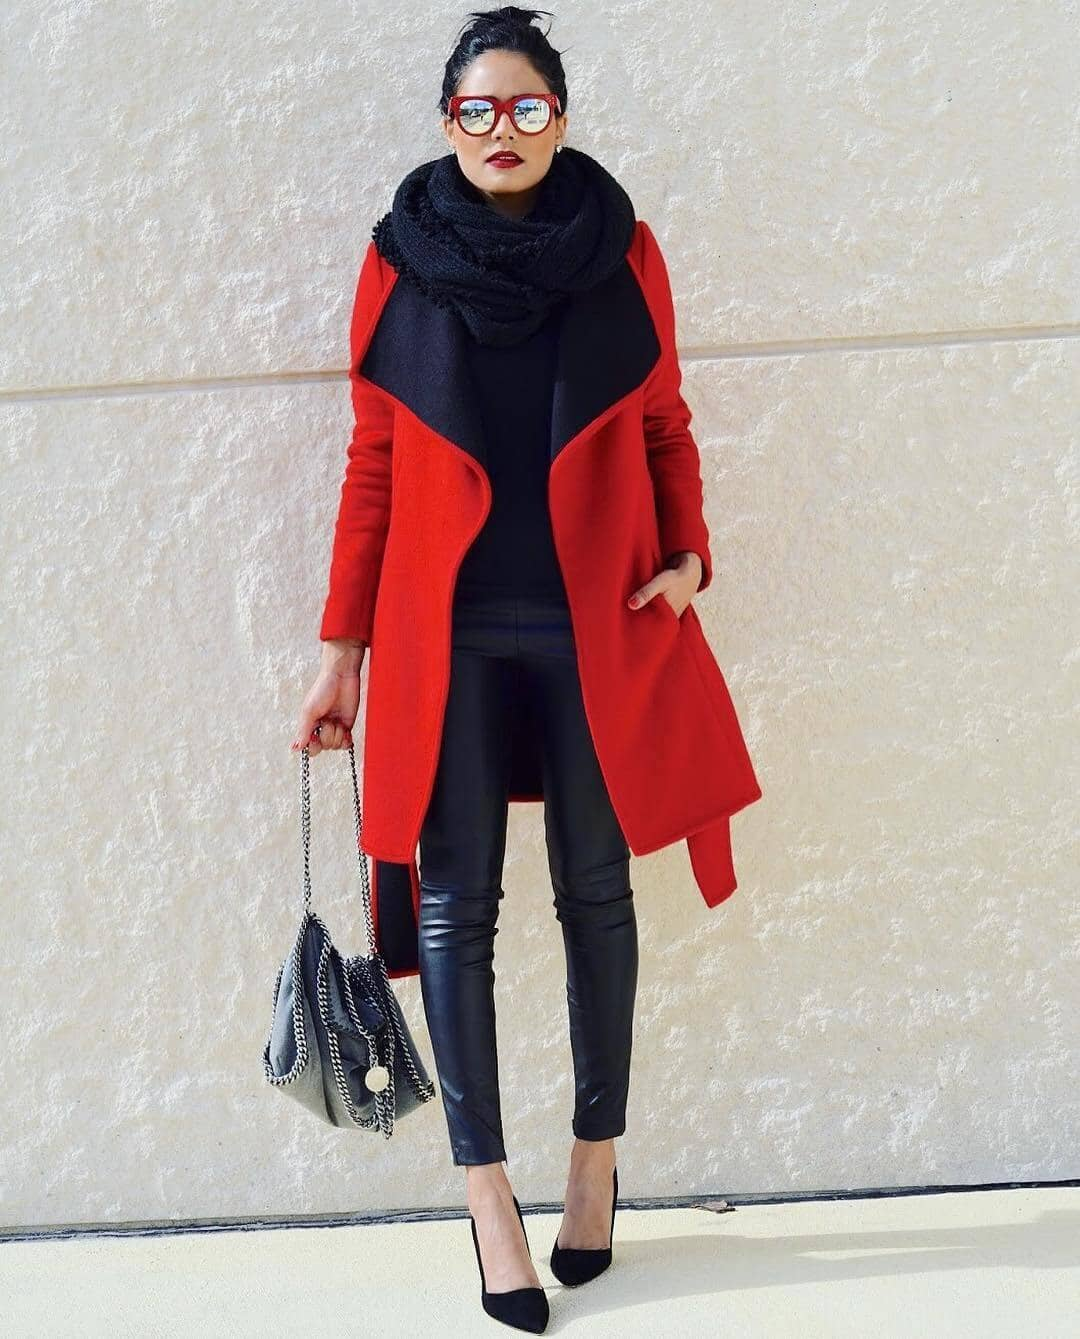 Bundled up with Splashes of Red